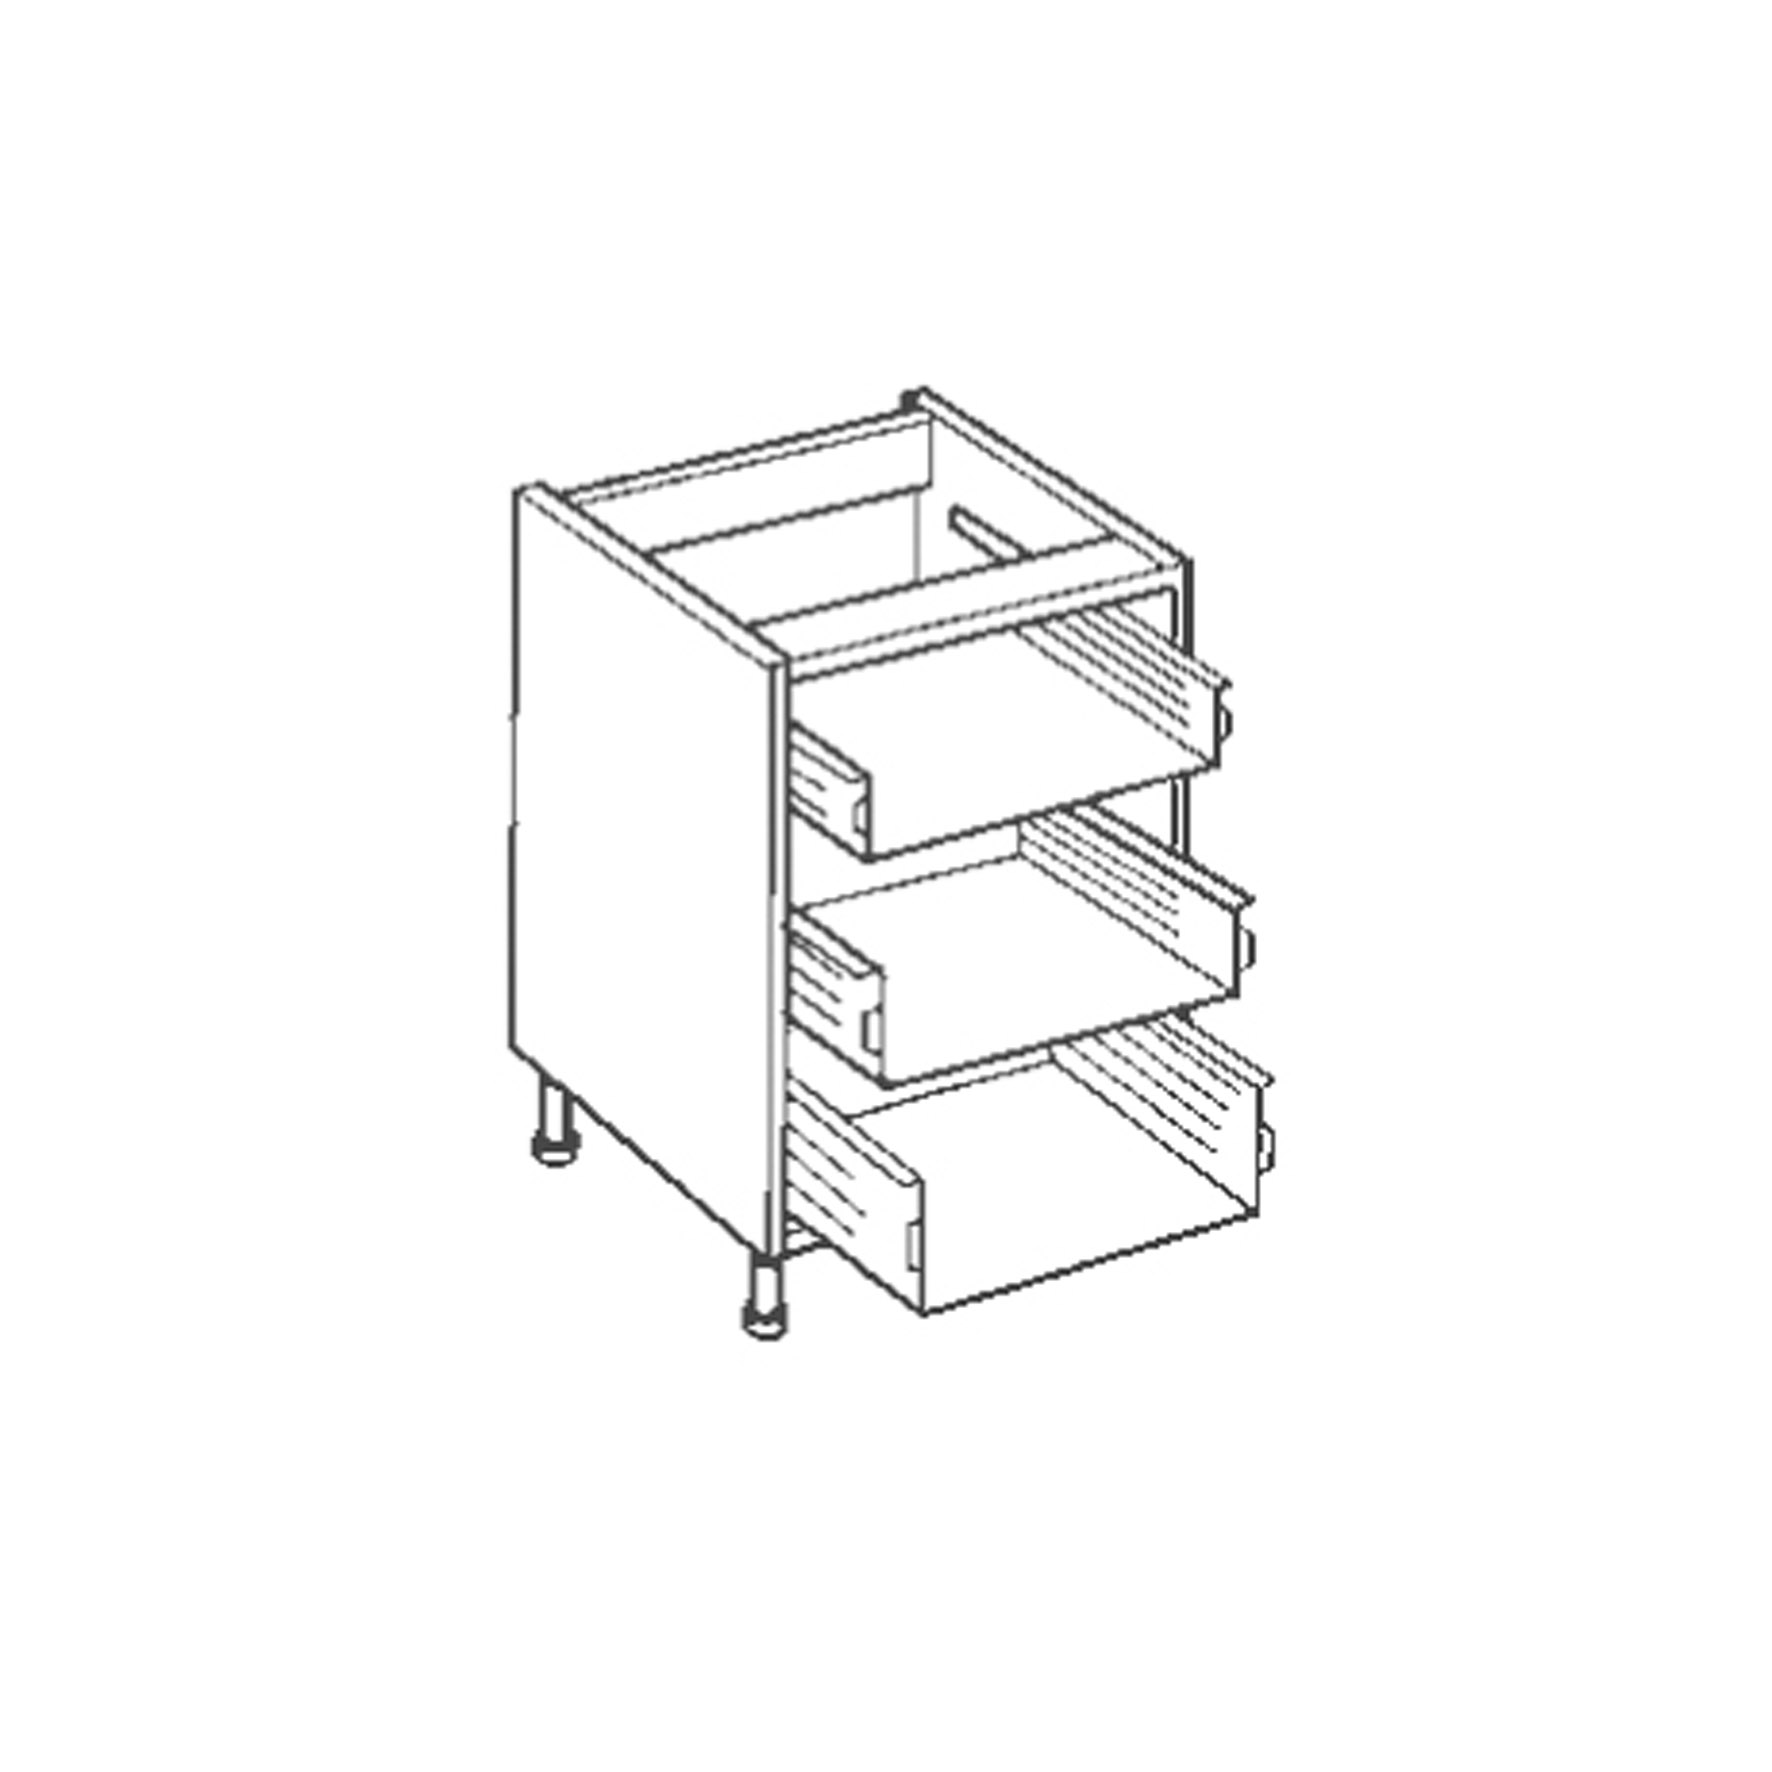 3 Drawer Base Unit Kitchen Carcasses Cabinets Made To Measure